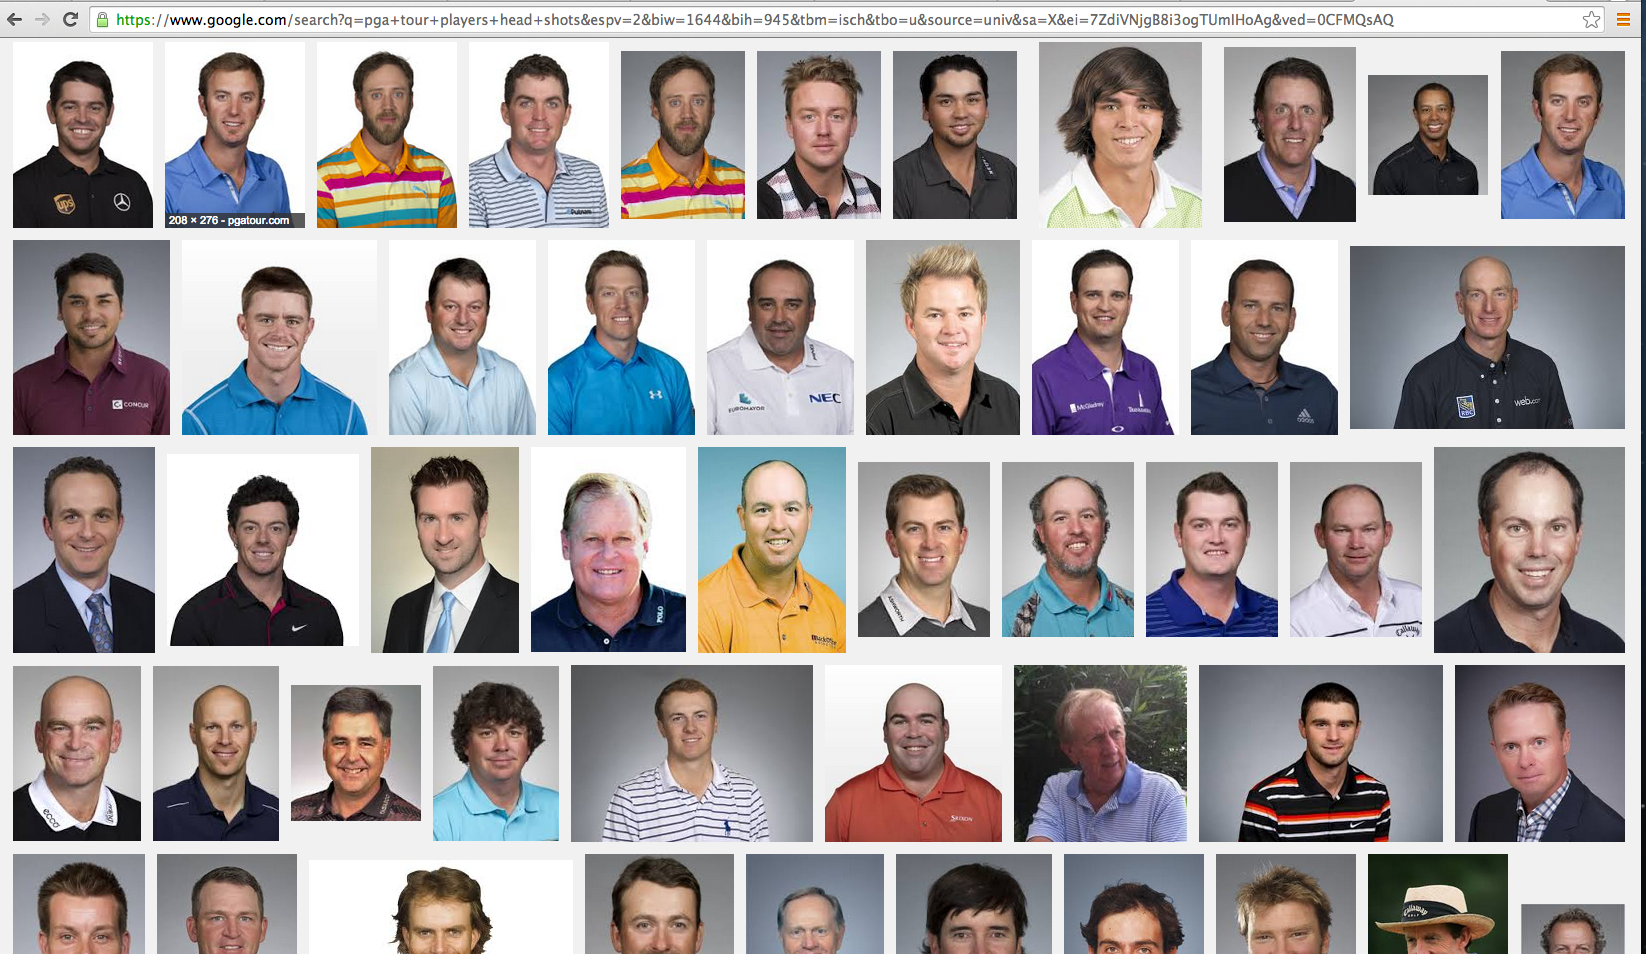 PGA Tour Head Shots